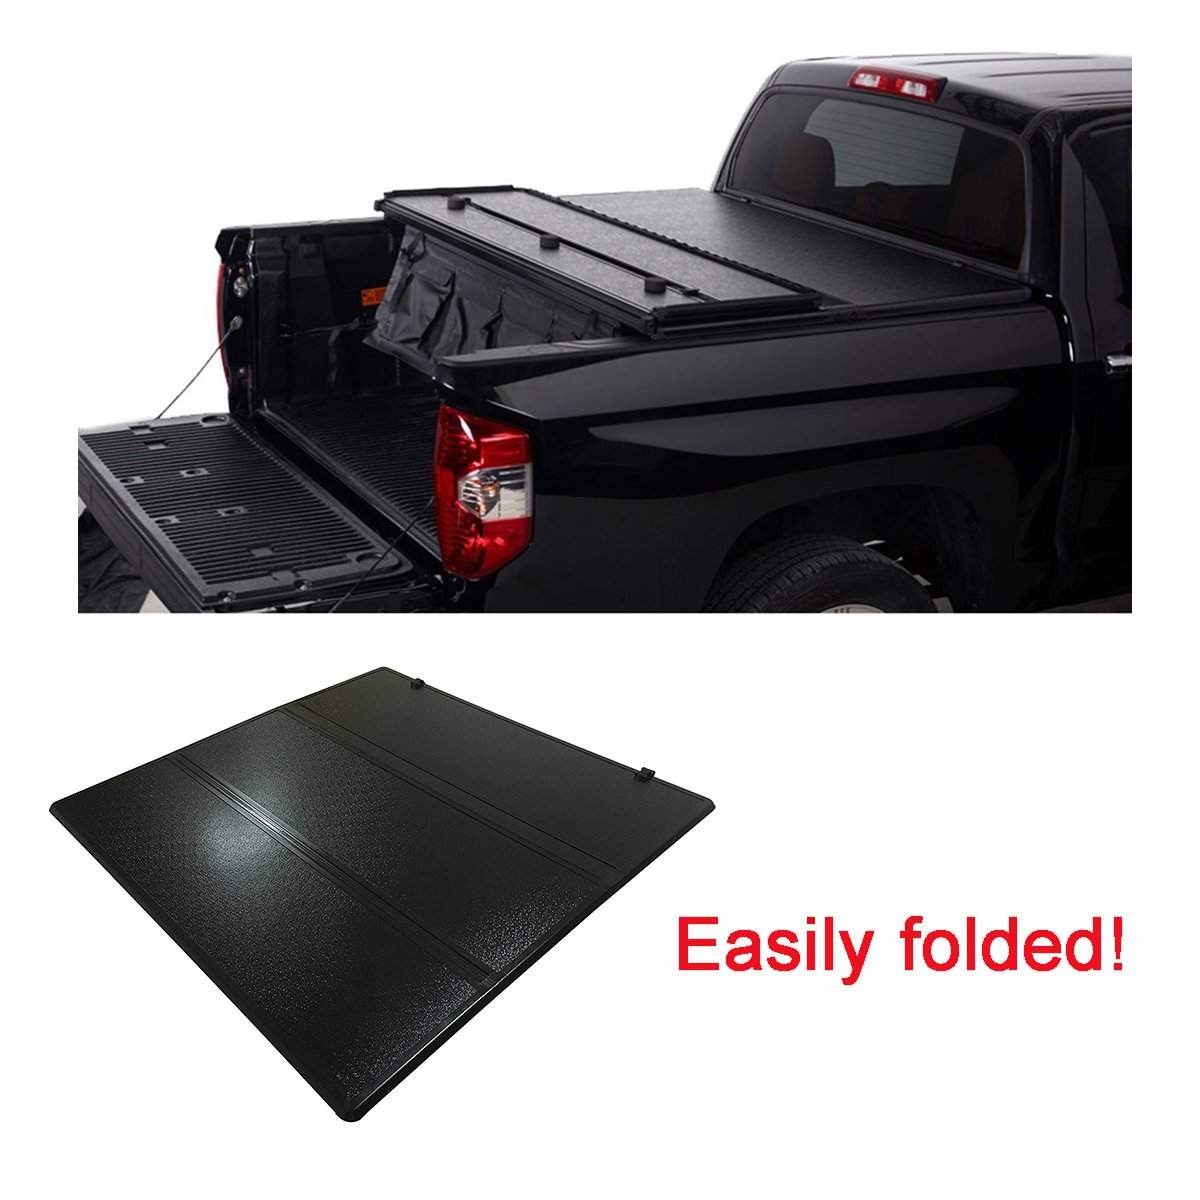 FUYU Hard Tonneau Cover for Ford F-150 1997-2003/2004 Heritage ...